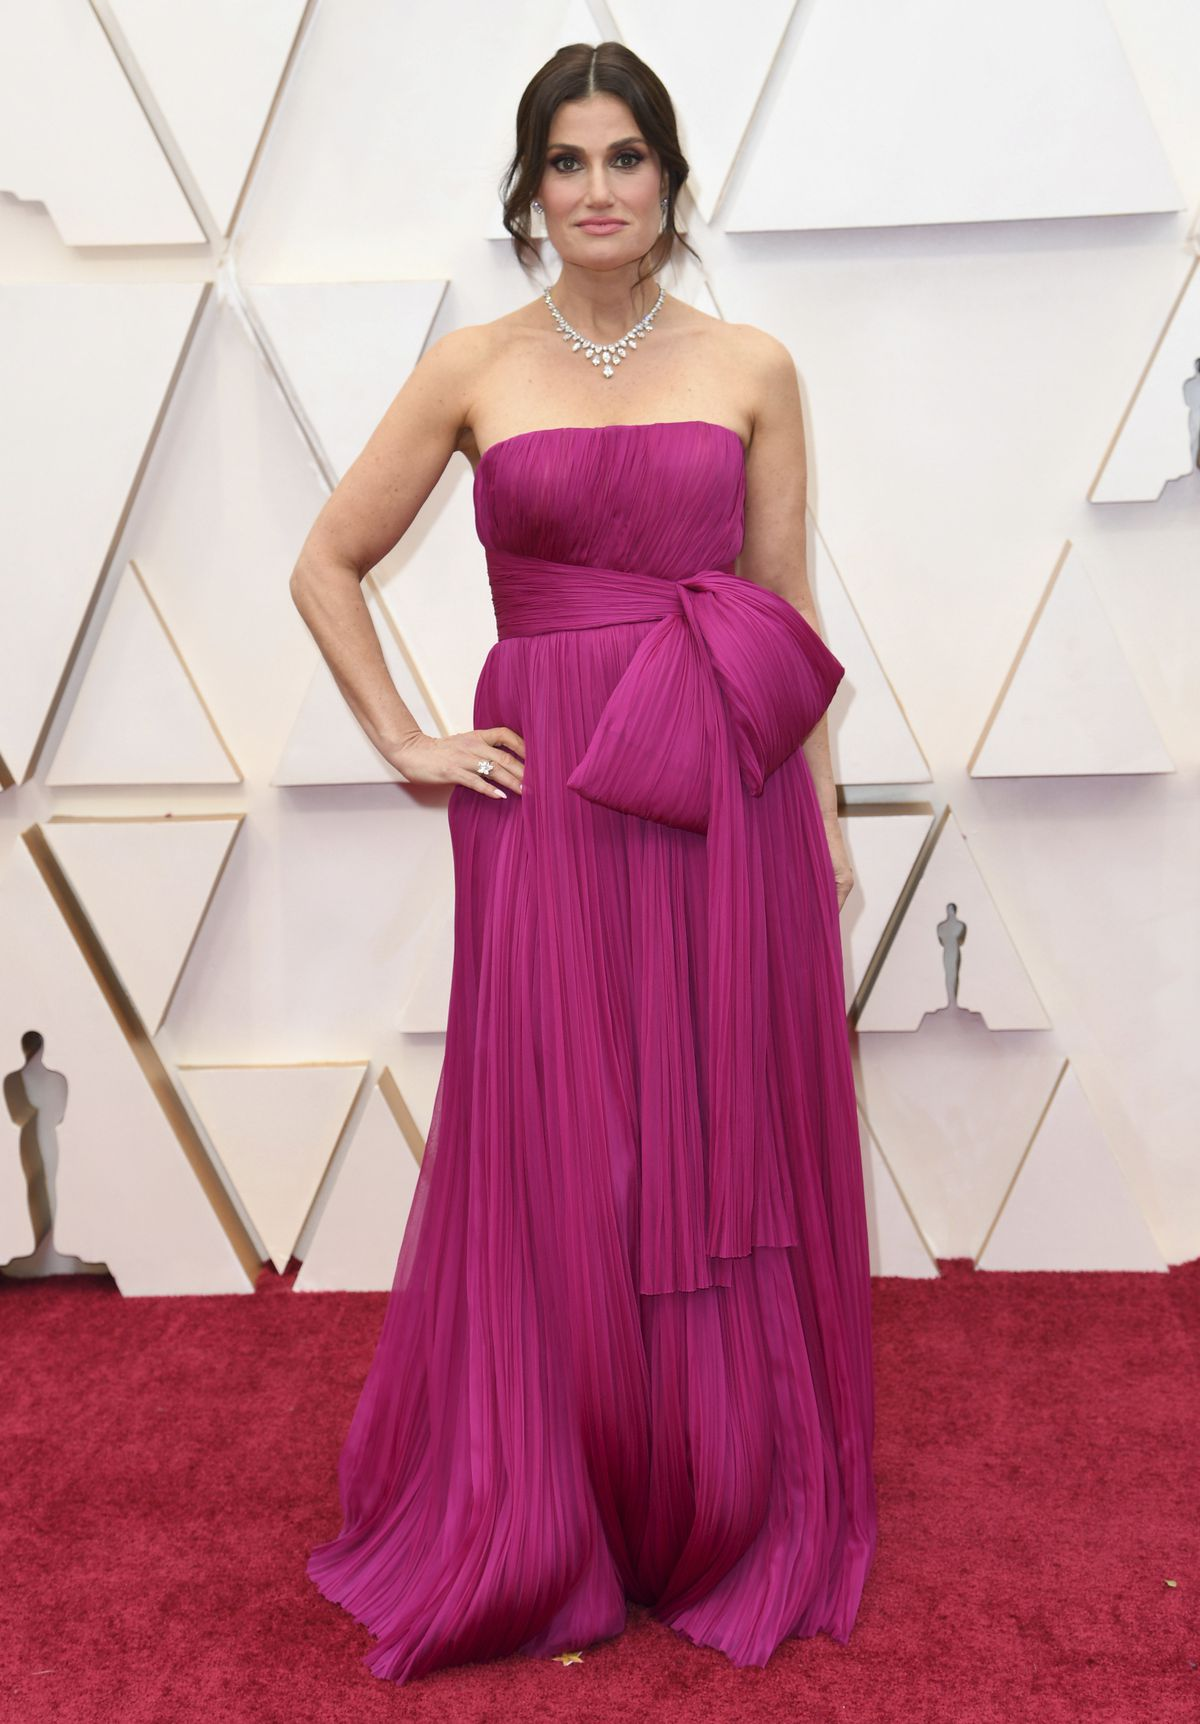 Idina Menzel, wearing a magenta J Mendel gown, arrives at the Oscars on Sunday at the Dolby Theatre in Los Angeles.